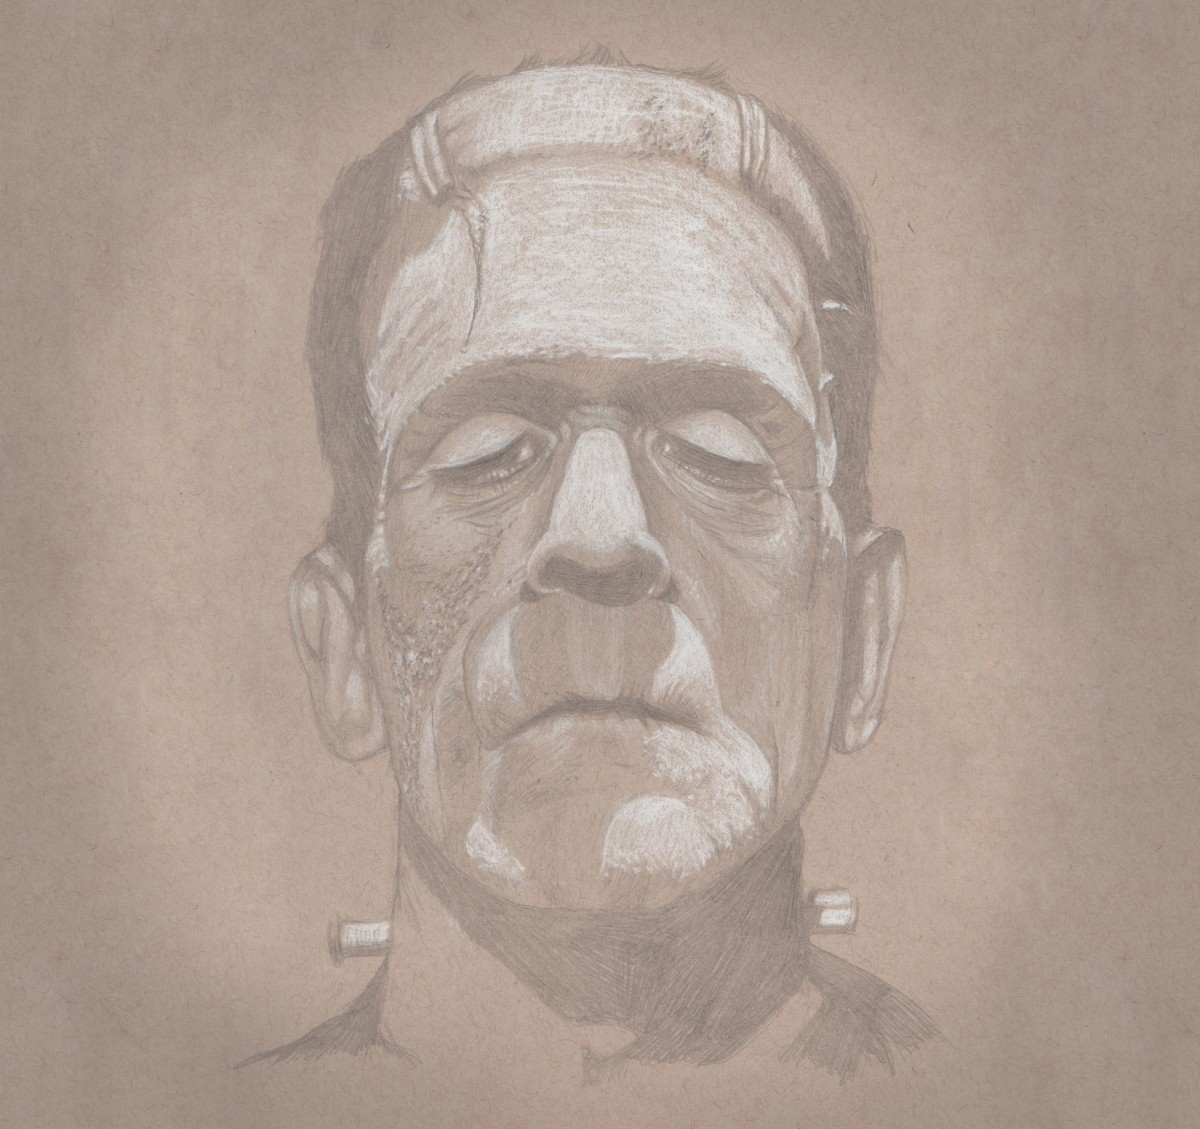 Frankenstein [3H pencil & white charcoal on toned paper]